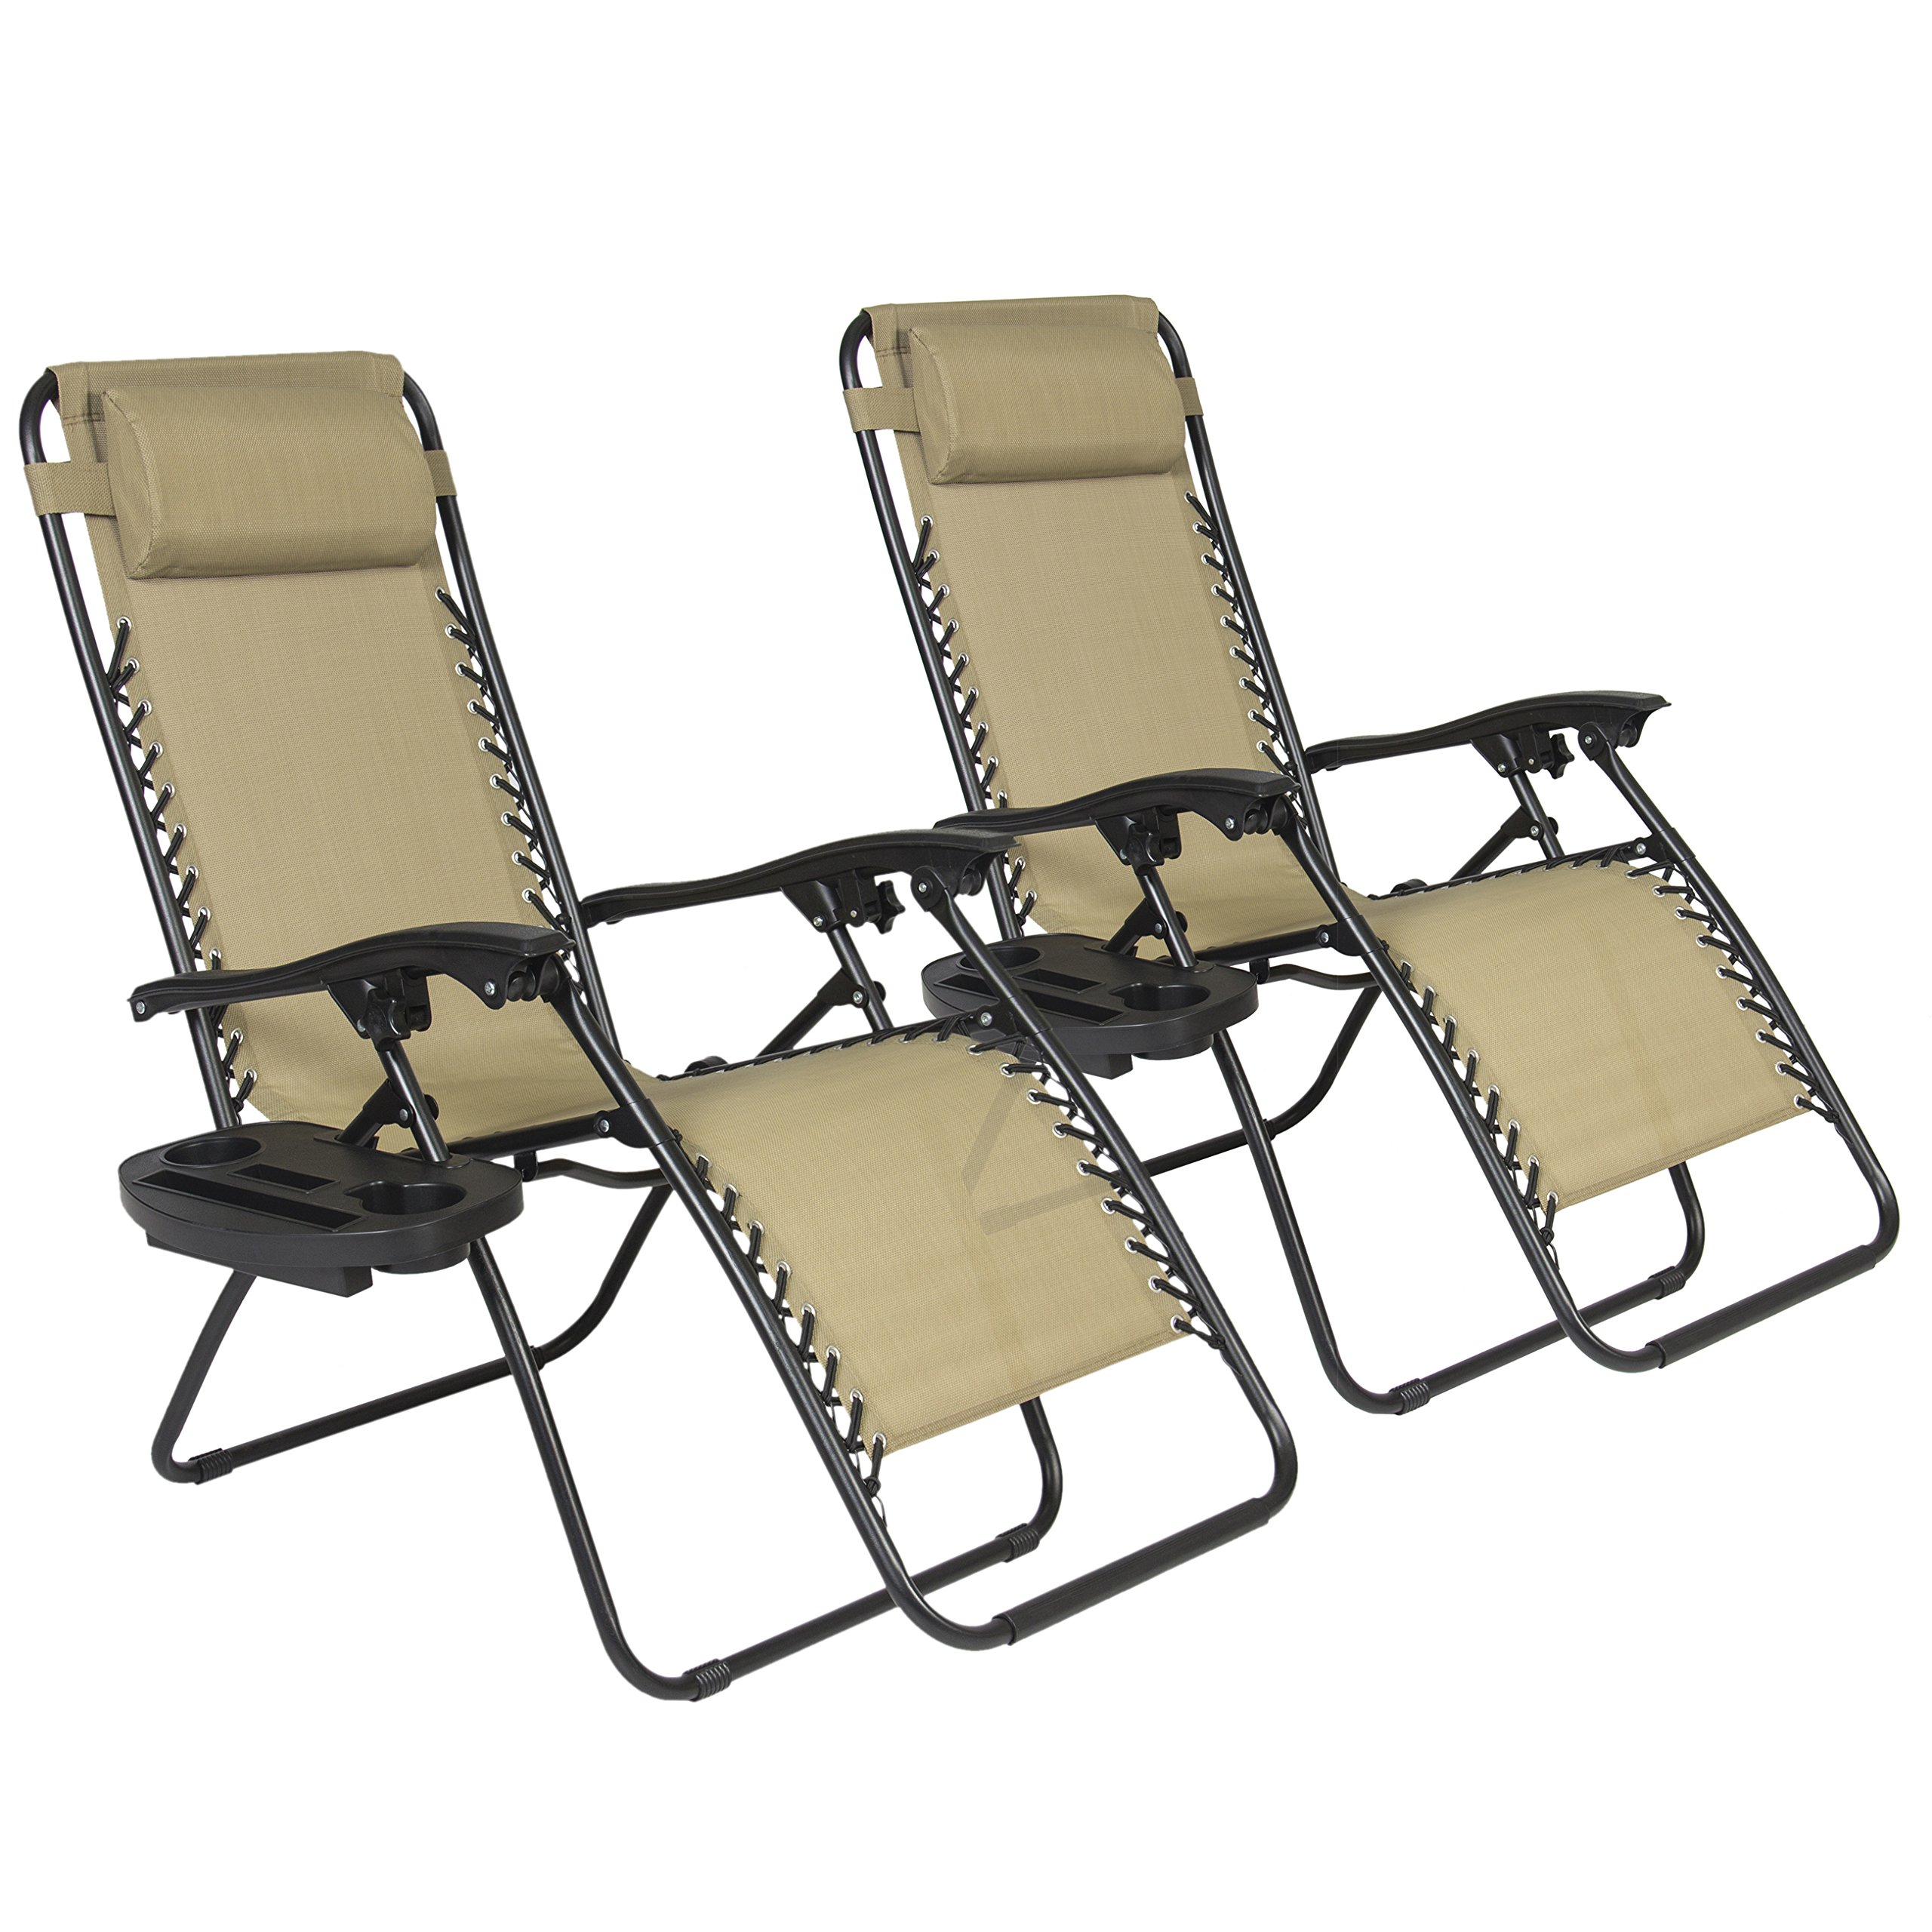 Best Choiceproducts Zero Gravity Chairs Tan Lounge Patio Chairs Outdoor Yard .. 16